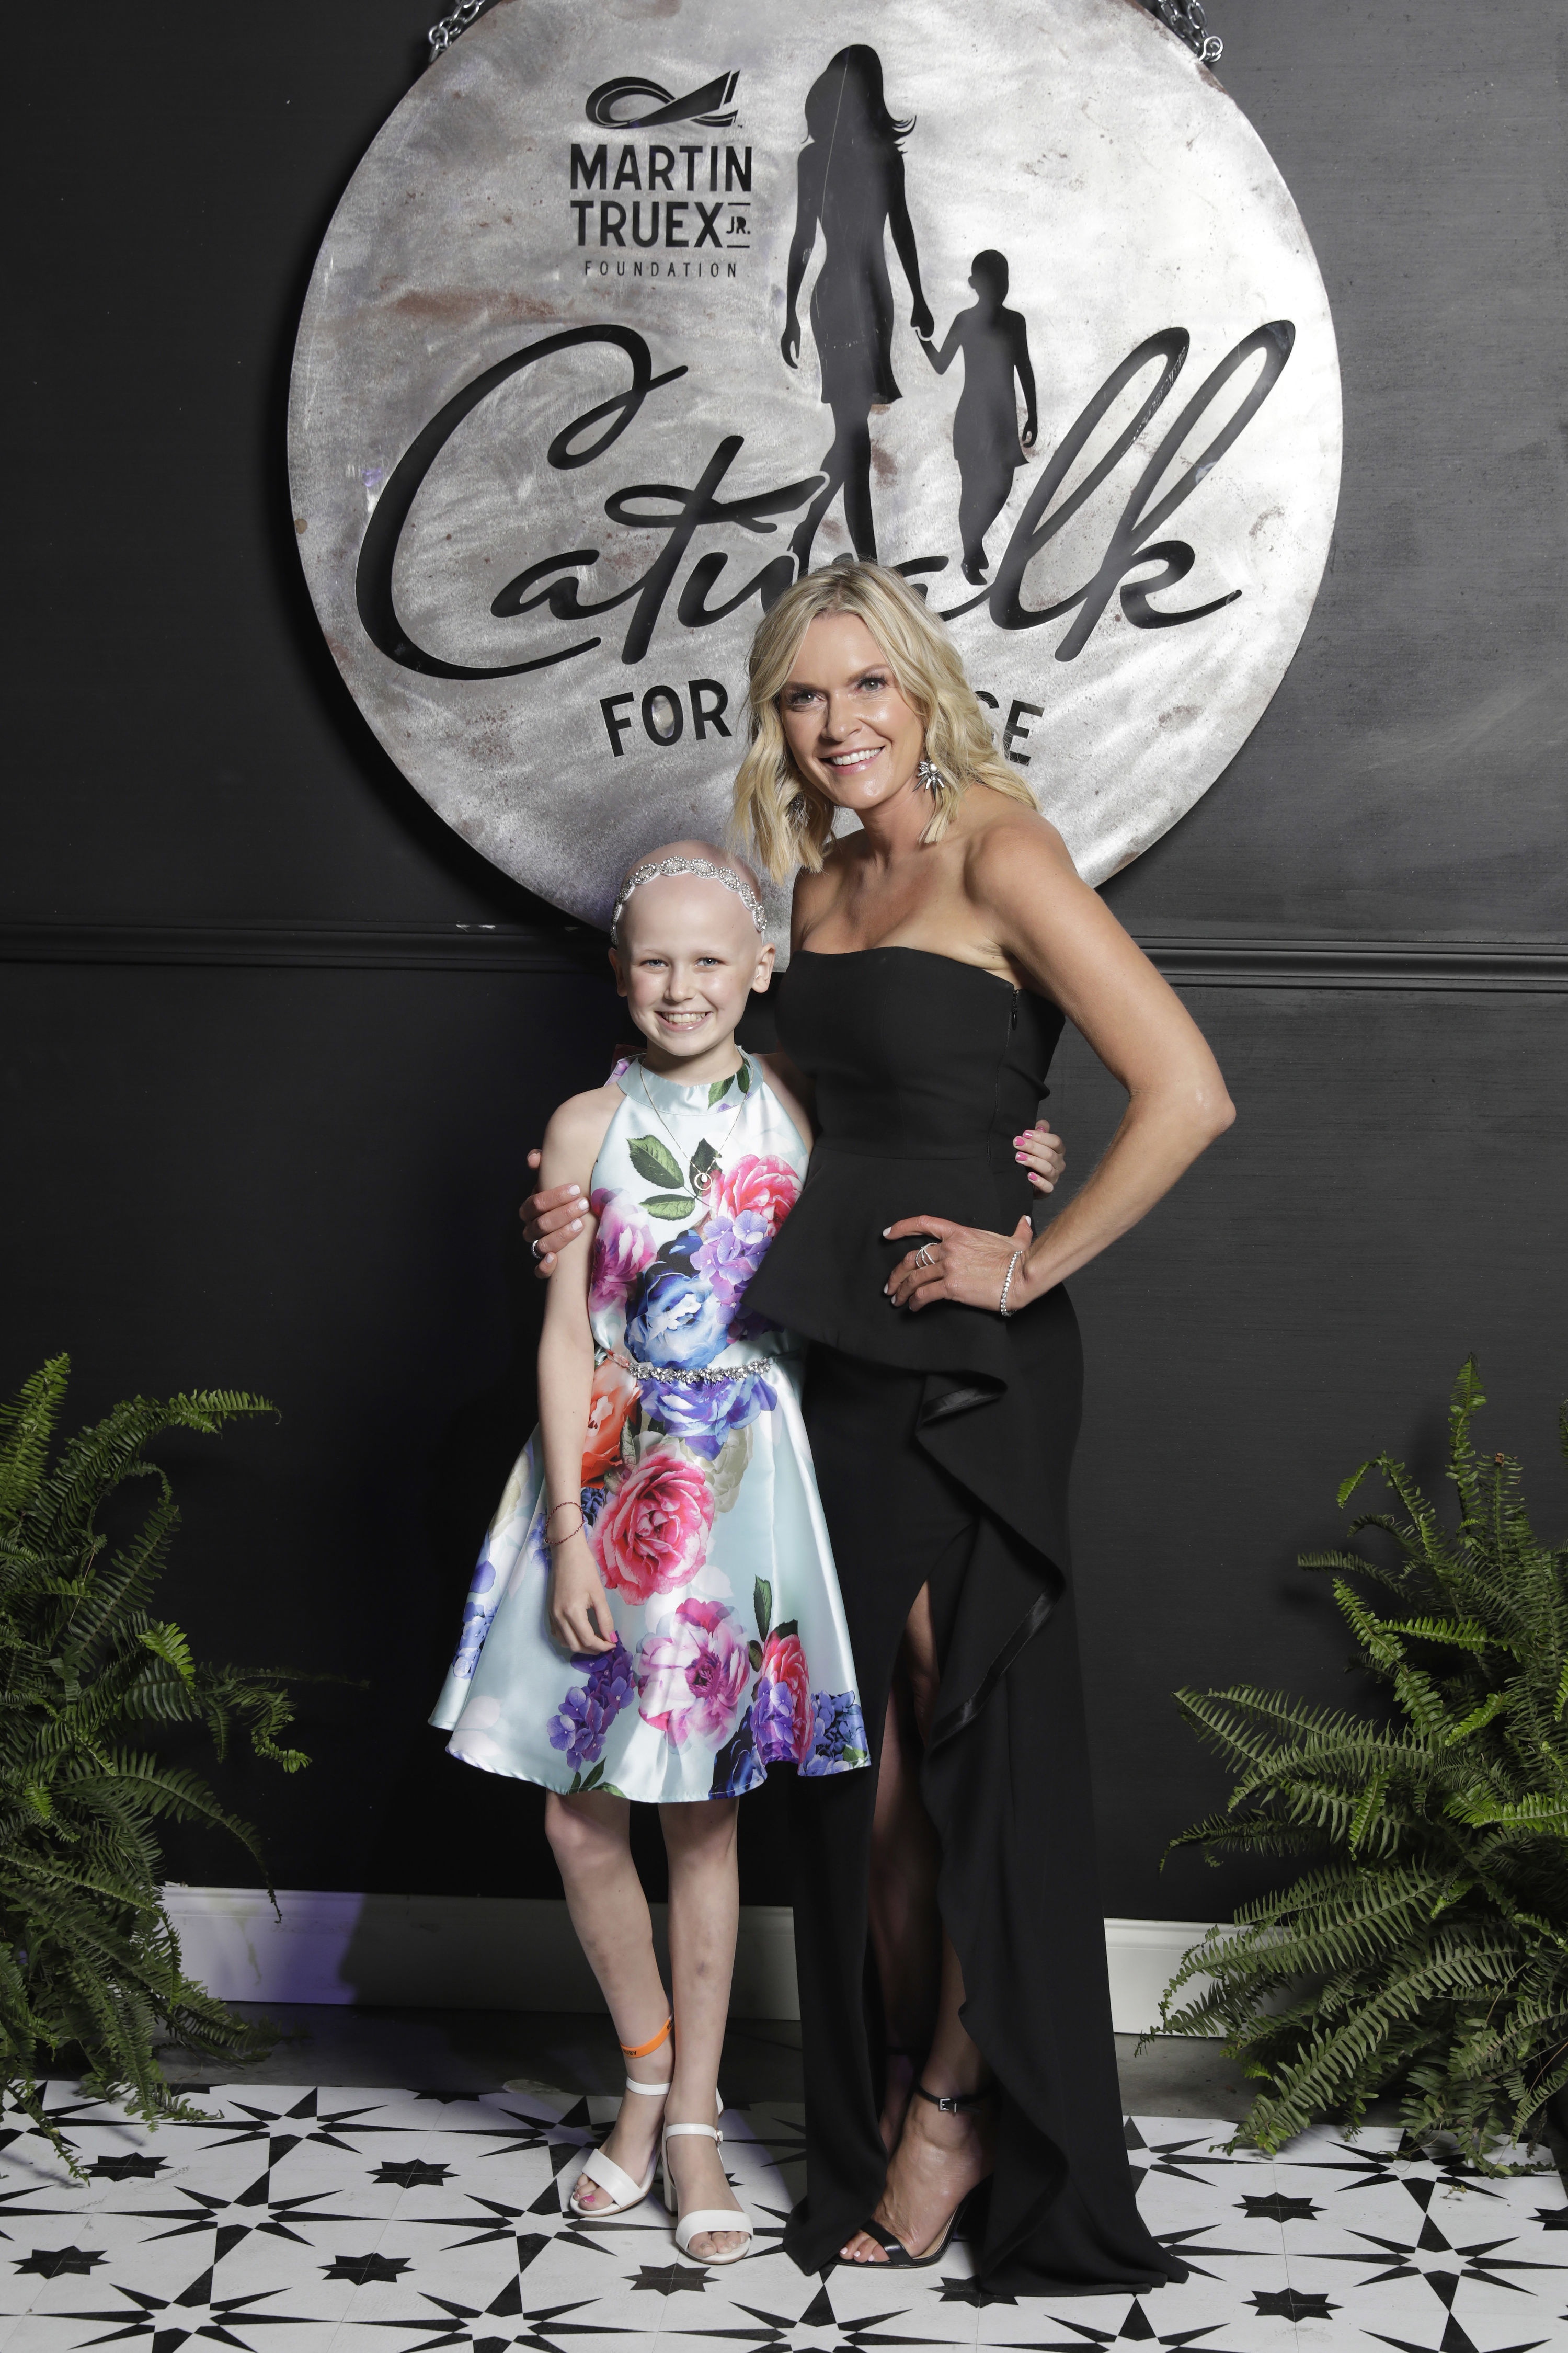 WATCH: How Sherry Pollex is Using Her Cancer Diagnosis as Fuel to Help Others Fight this Disease